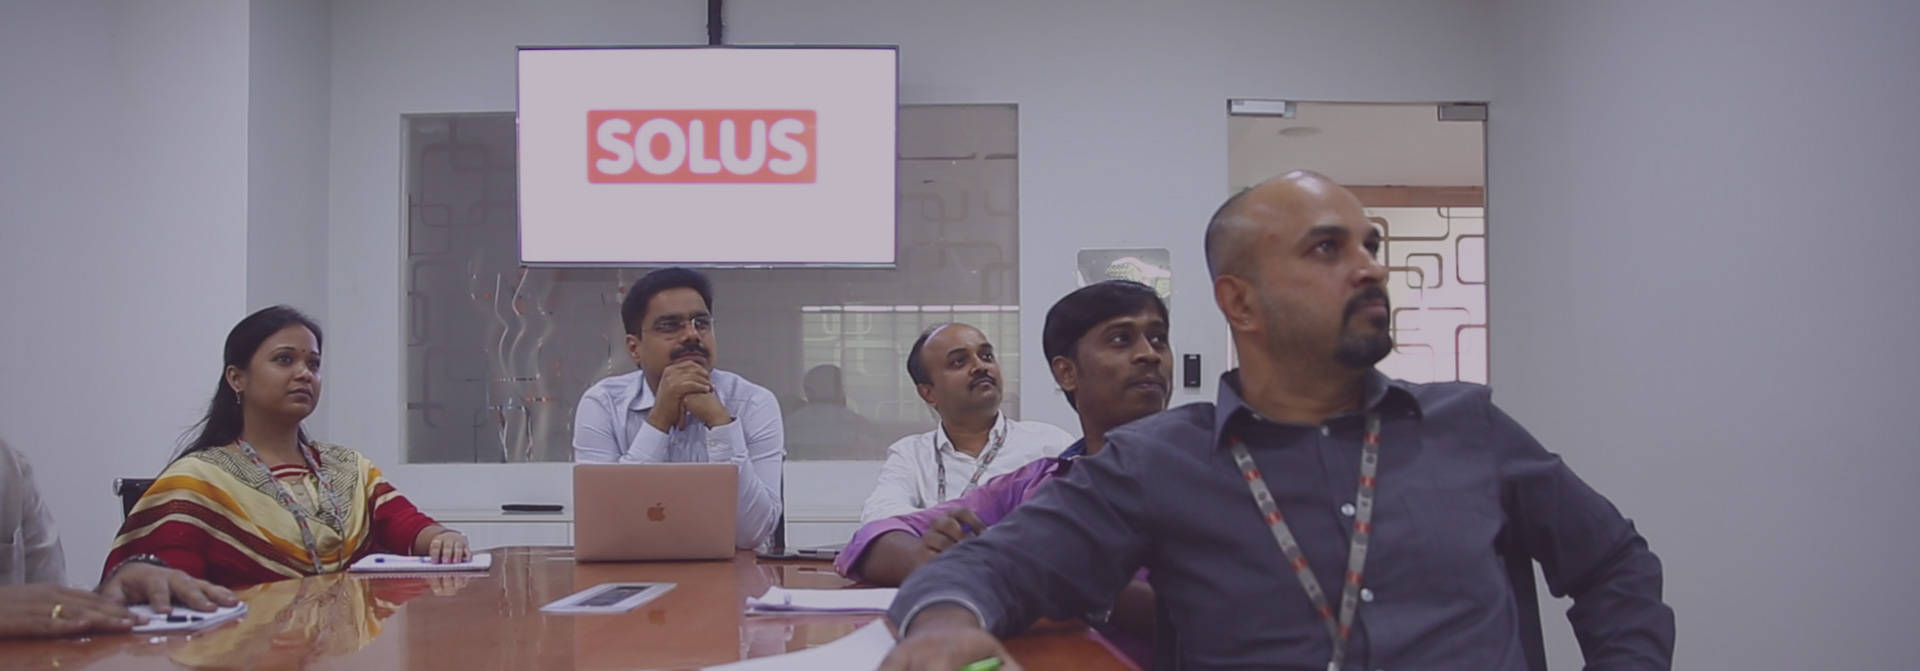 Leaders behind success of SOLUS